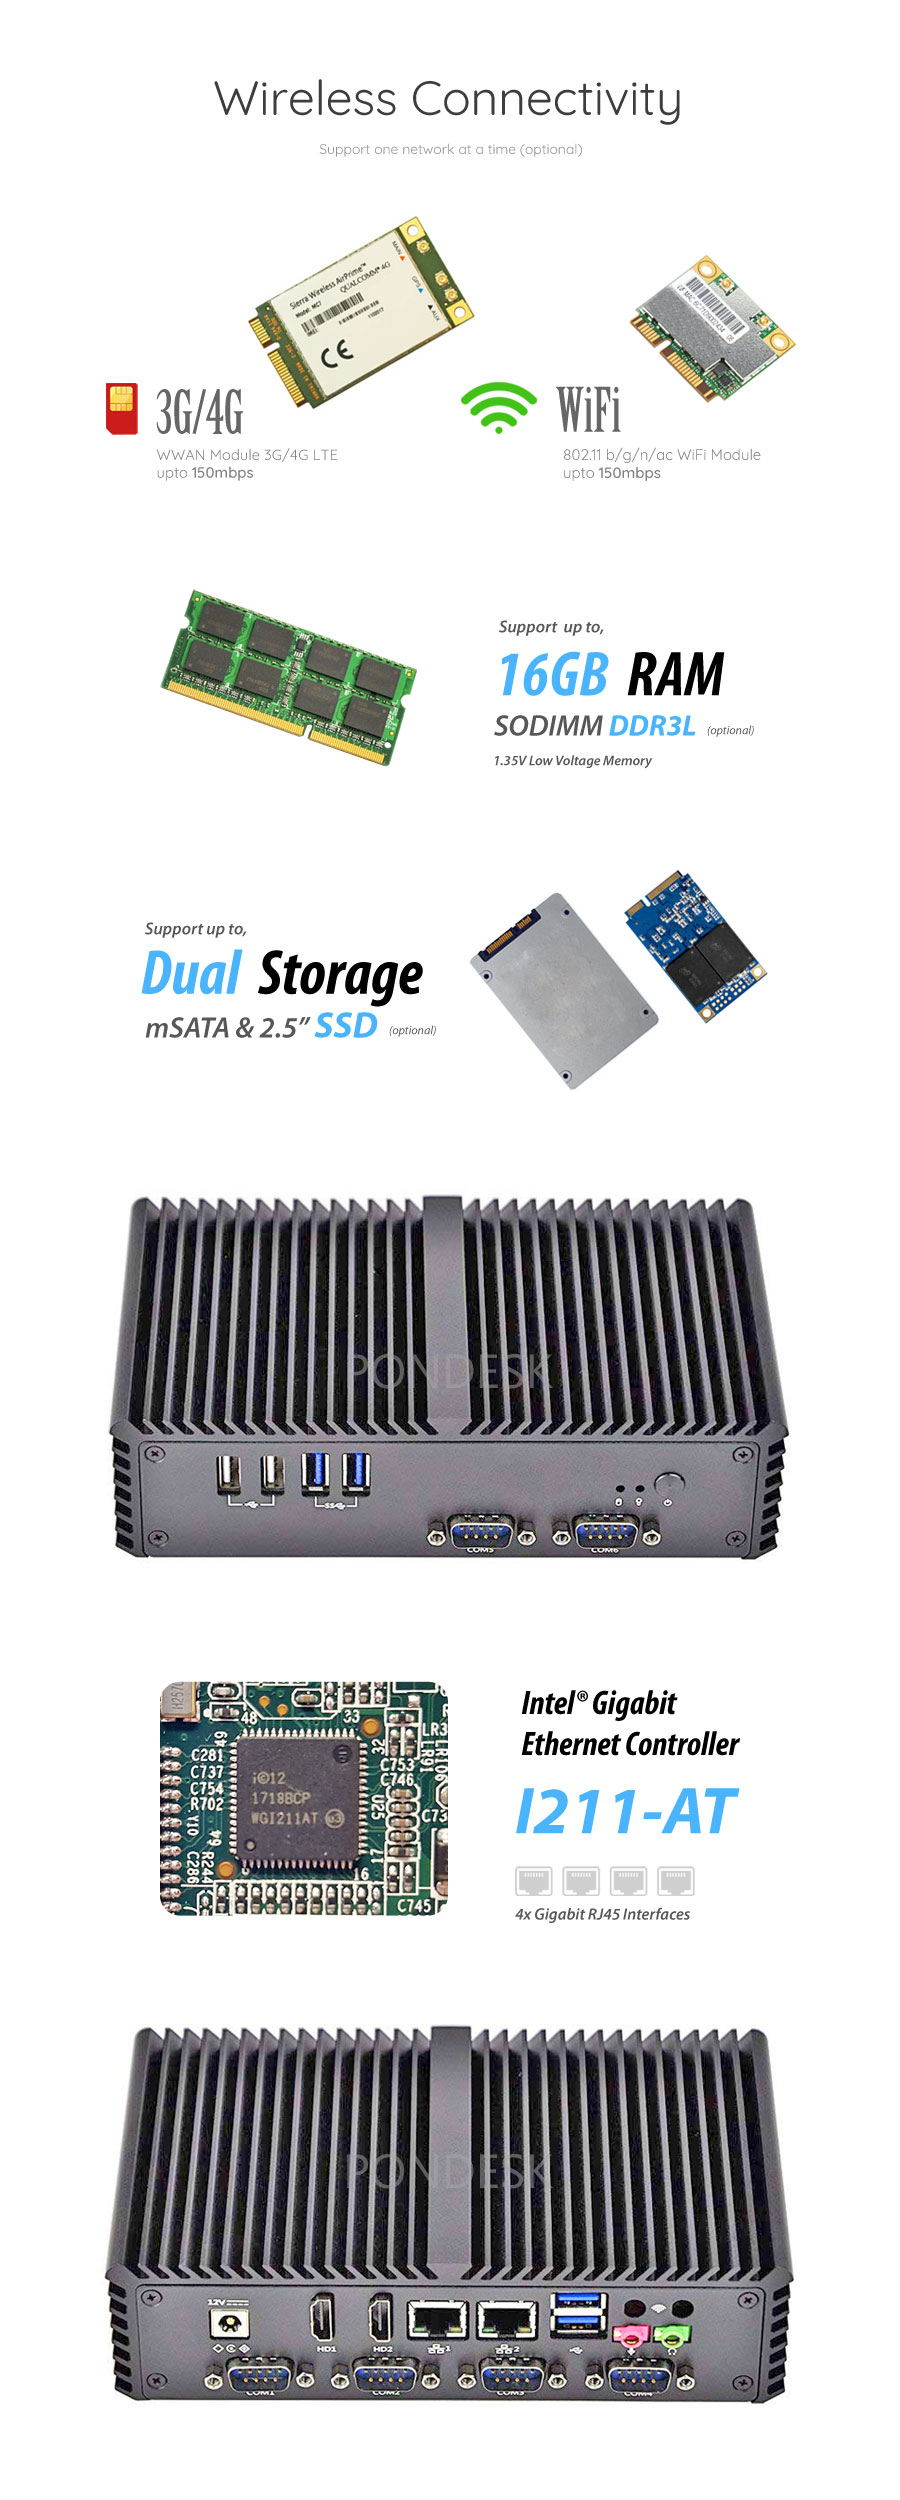 Intel® 3805U WiFi 4G 6 COM 2 LAN Fanless Industrial Mini PC - MNHO-067 | Image